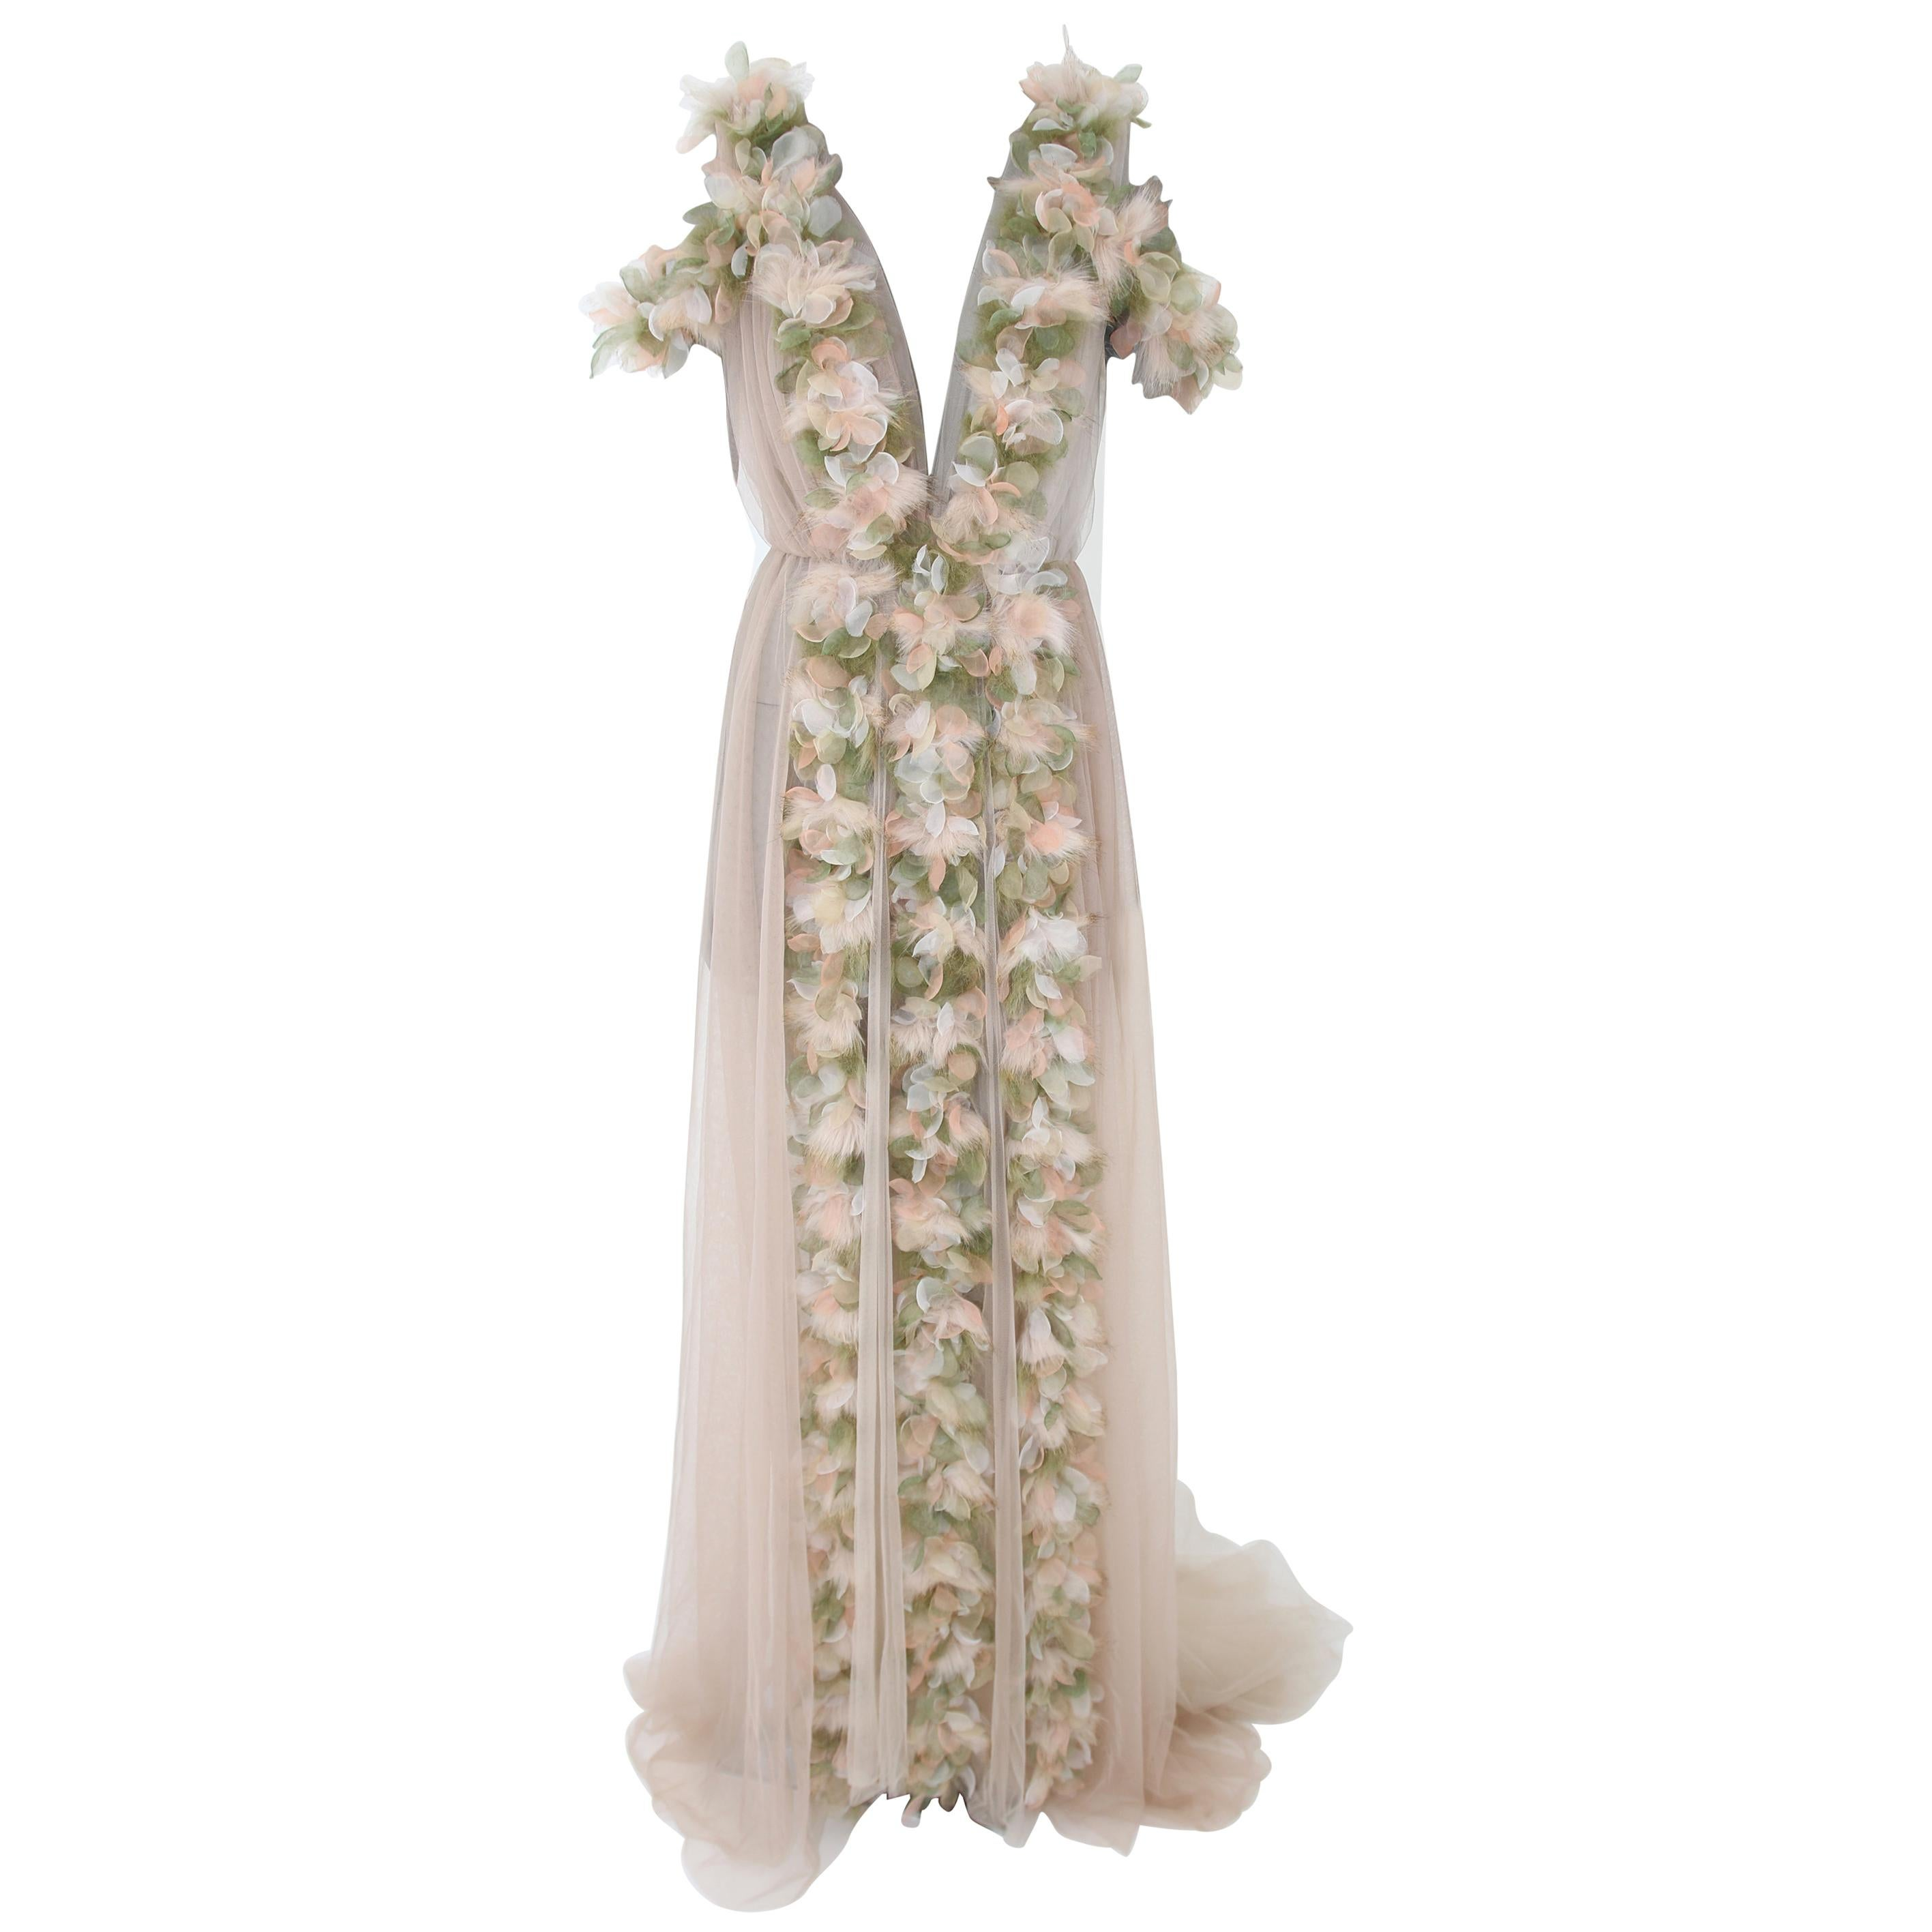 Pelush Champagne Tulle Dress Gown With Tridimensional Flowers And Faux Feathers